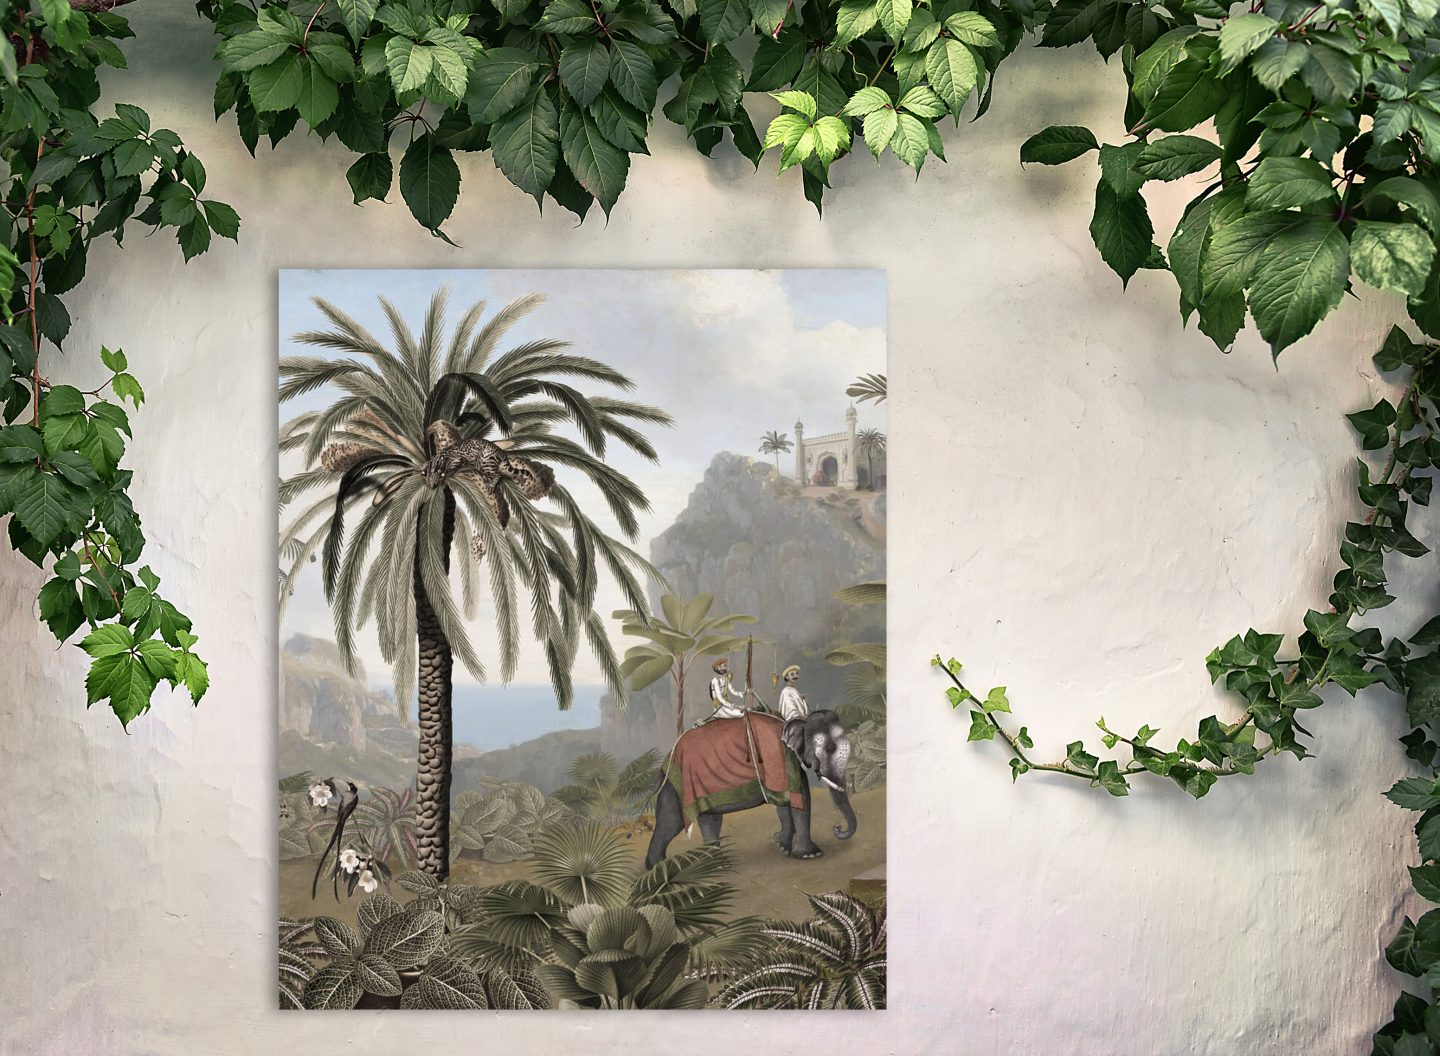 Metal print on a white outdoor wall showing an elephant and palm tree